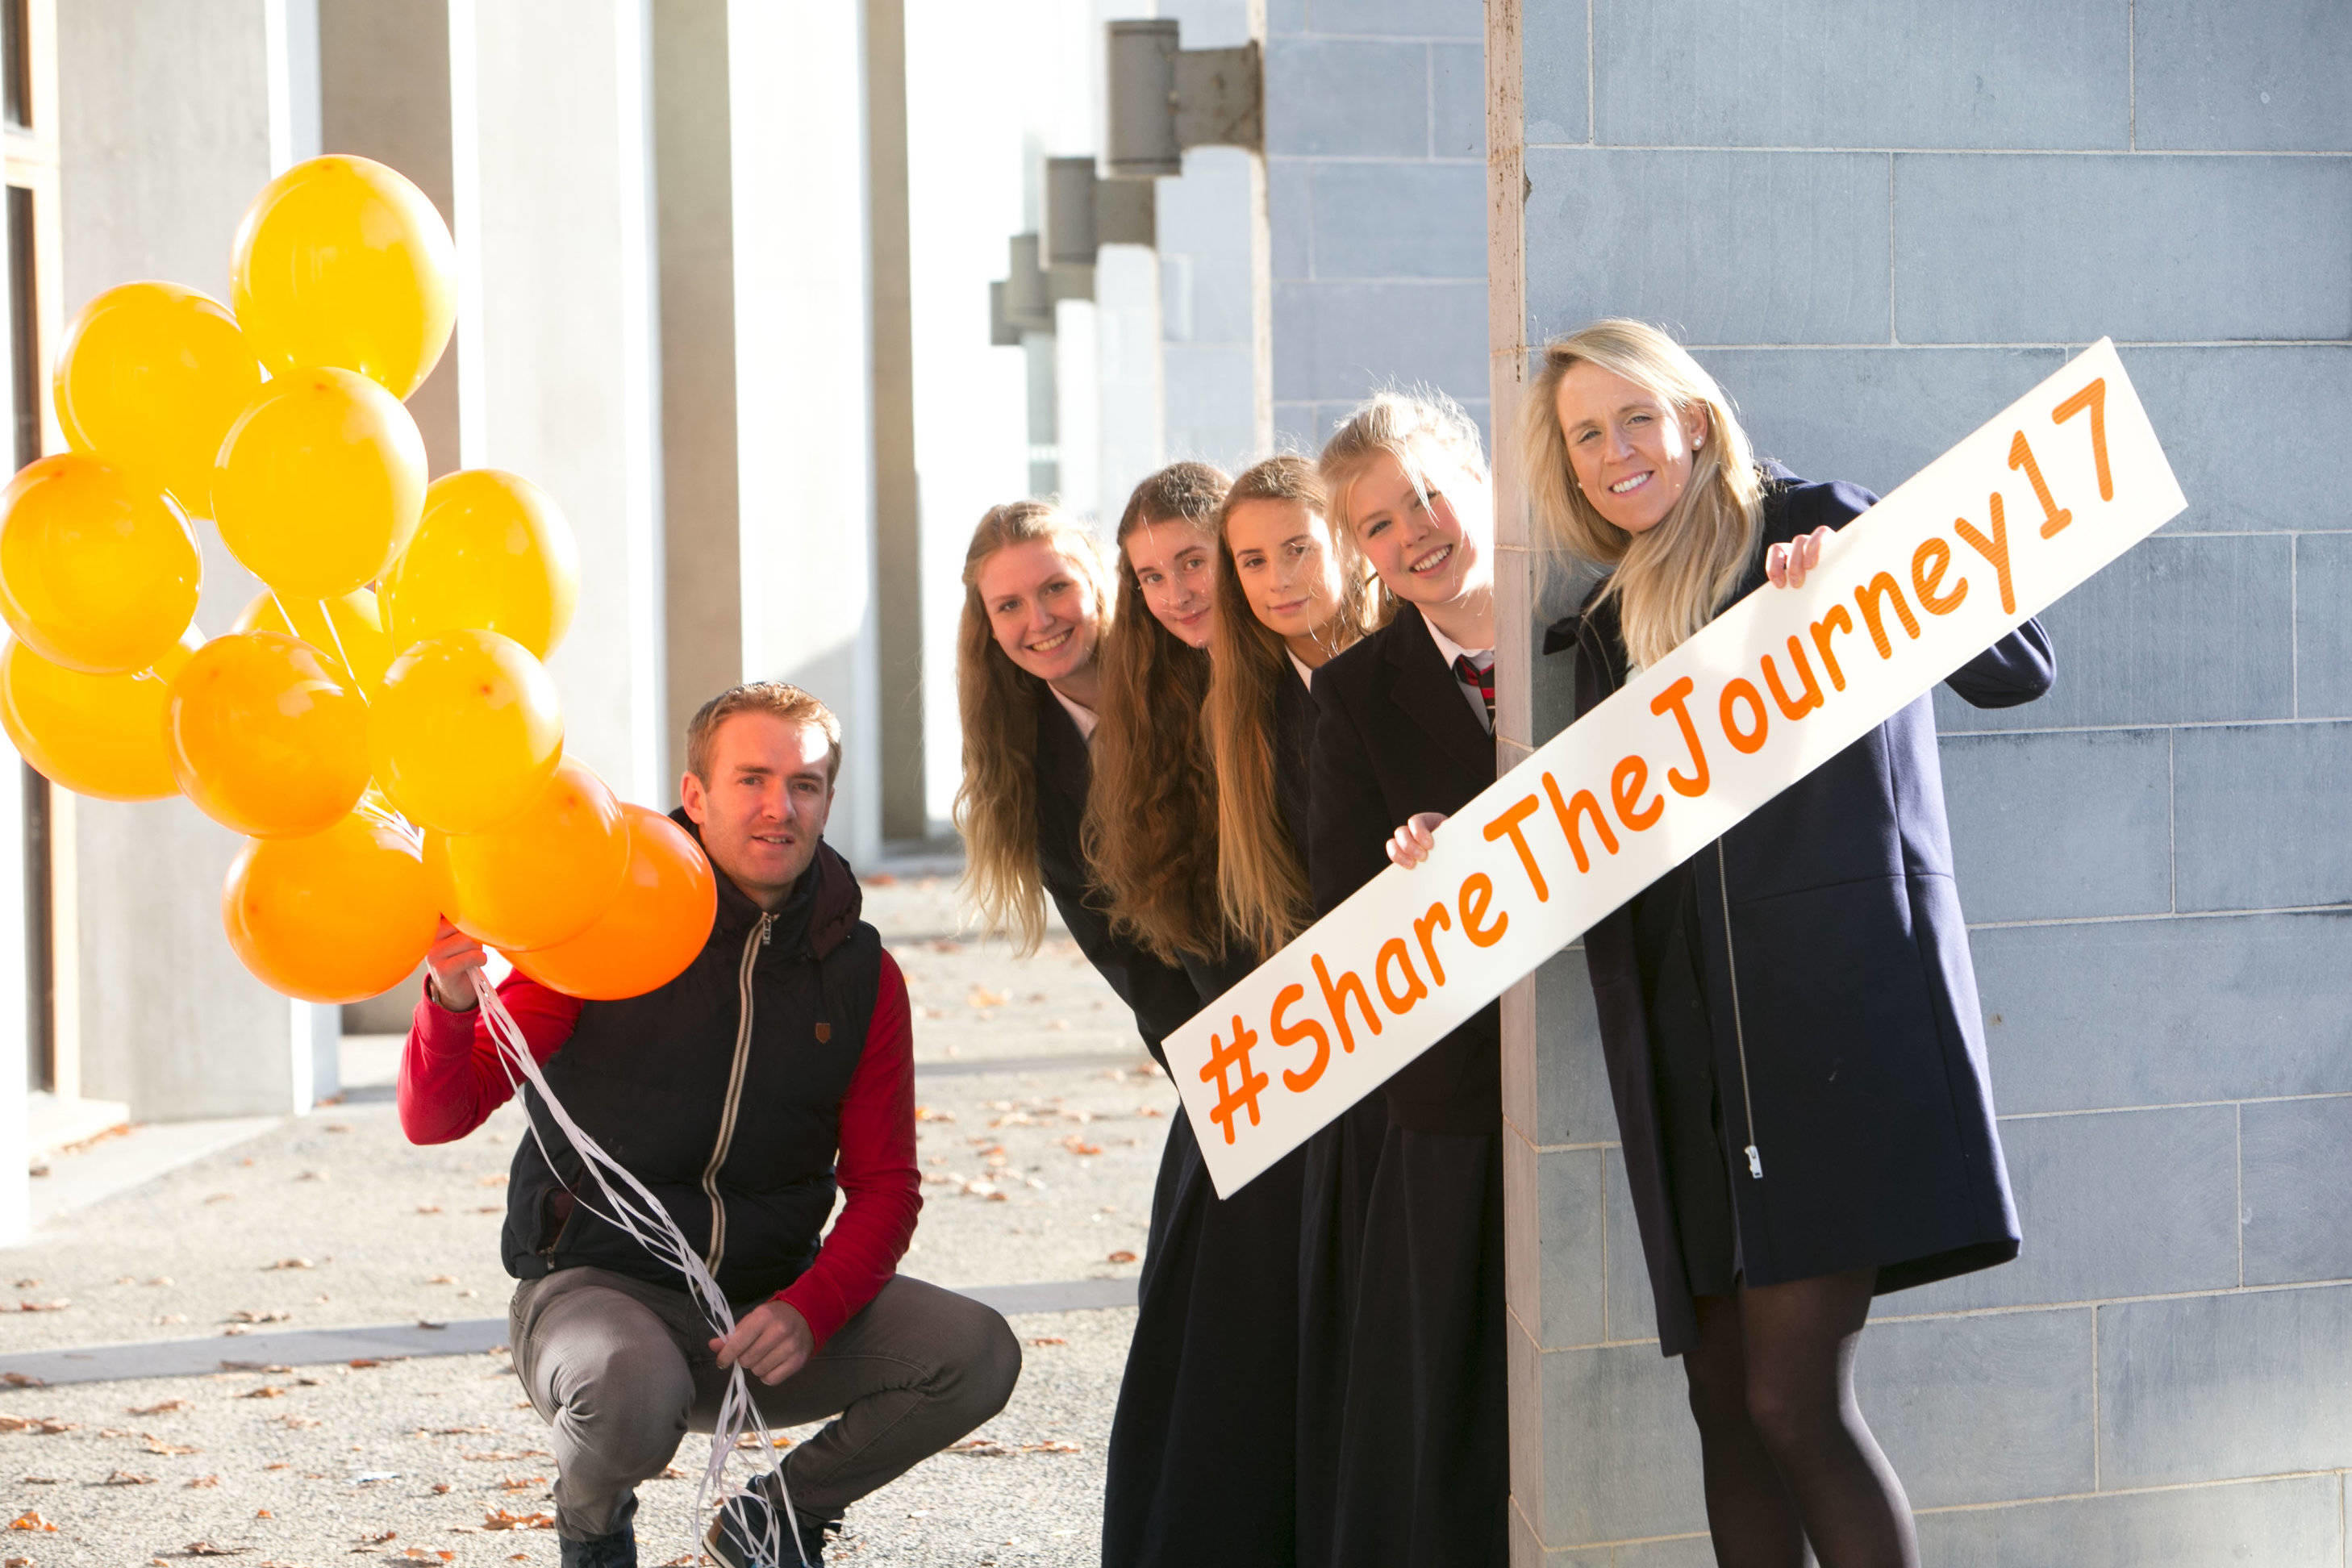 Pictured at the Launch of the Cycle Against Suicide launch Student LeadersÕ Congress 2017 were: Tipperary hurler Noel McGrath,Ireland womenÕs rugby Grand Slam winner and refereeing pioneer Joy Neville pictured with Isabelle Luff, Robyn Cleary, Clodagh Harrington and Ciara Koenig from Villiers School in Limerick. Picture Credit Brian Gavin Press 22